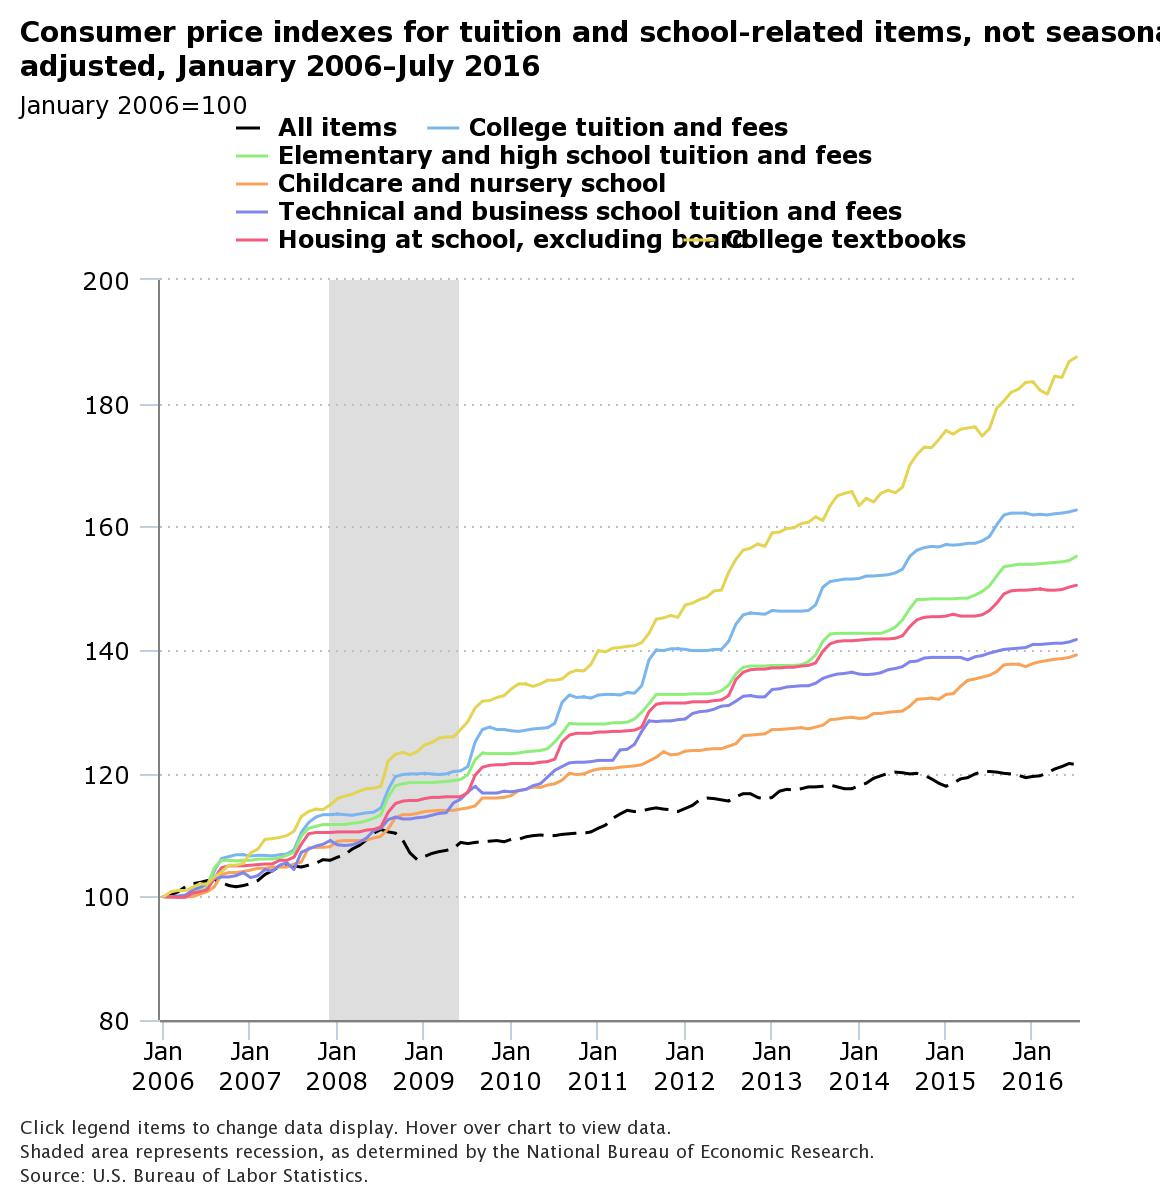 consumer price index for tuition and school related items from 1/06-7/16.  Shows growth of textbooks costs from 100-$190.